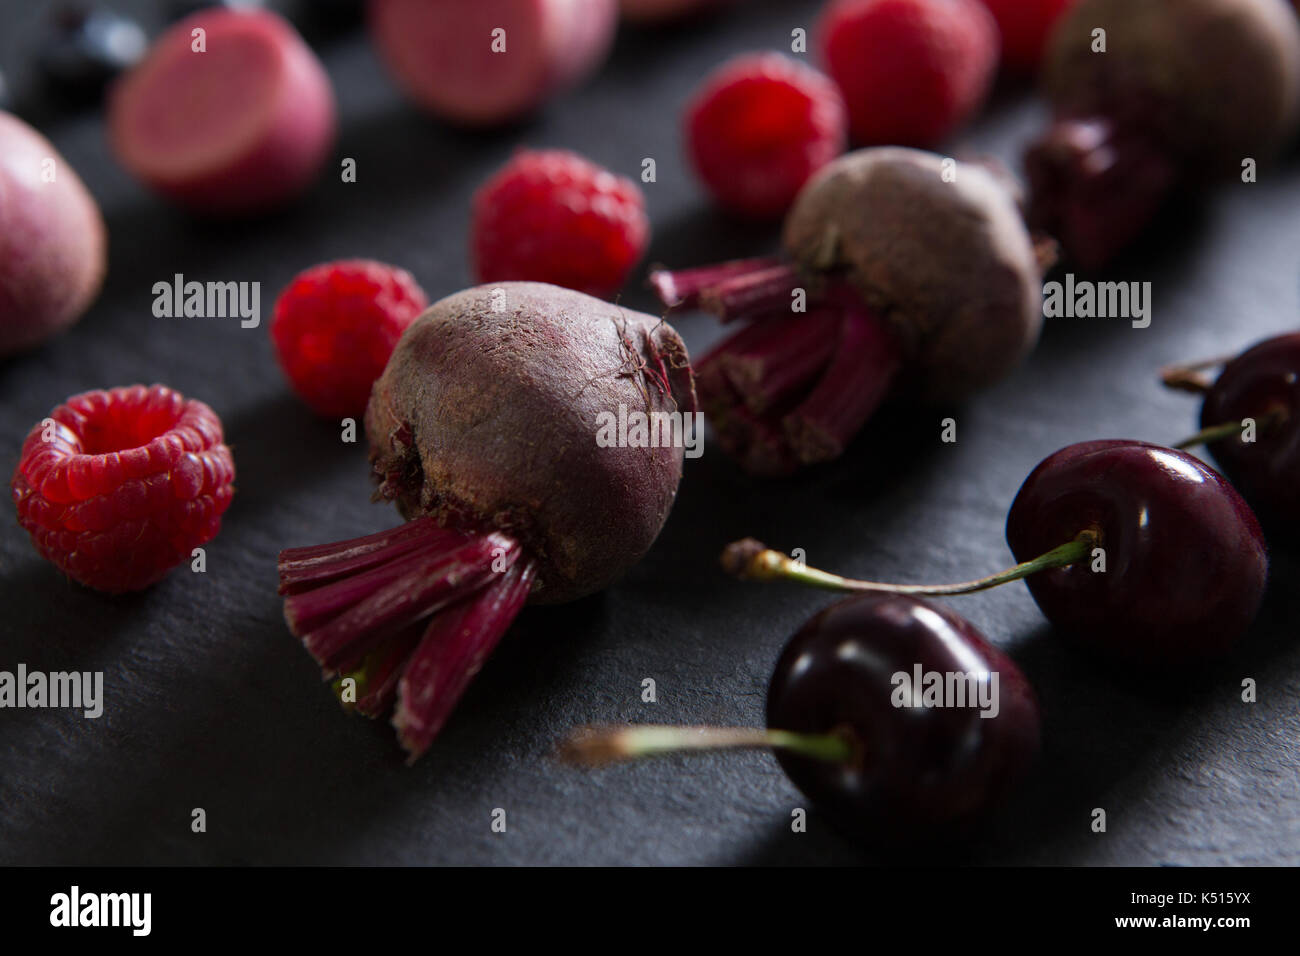 Close-up of fruits and vegetables on chopping board Stock Photo